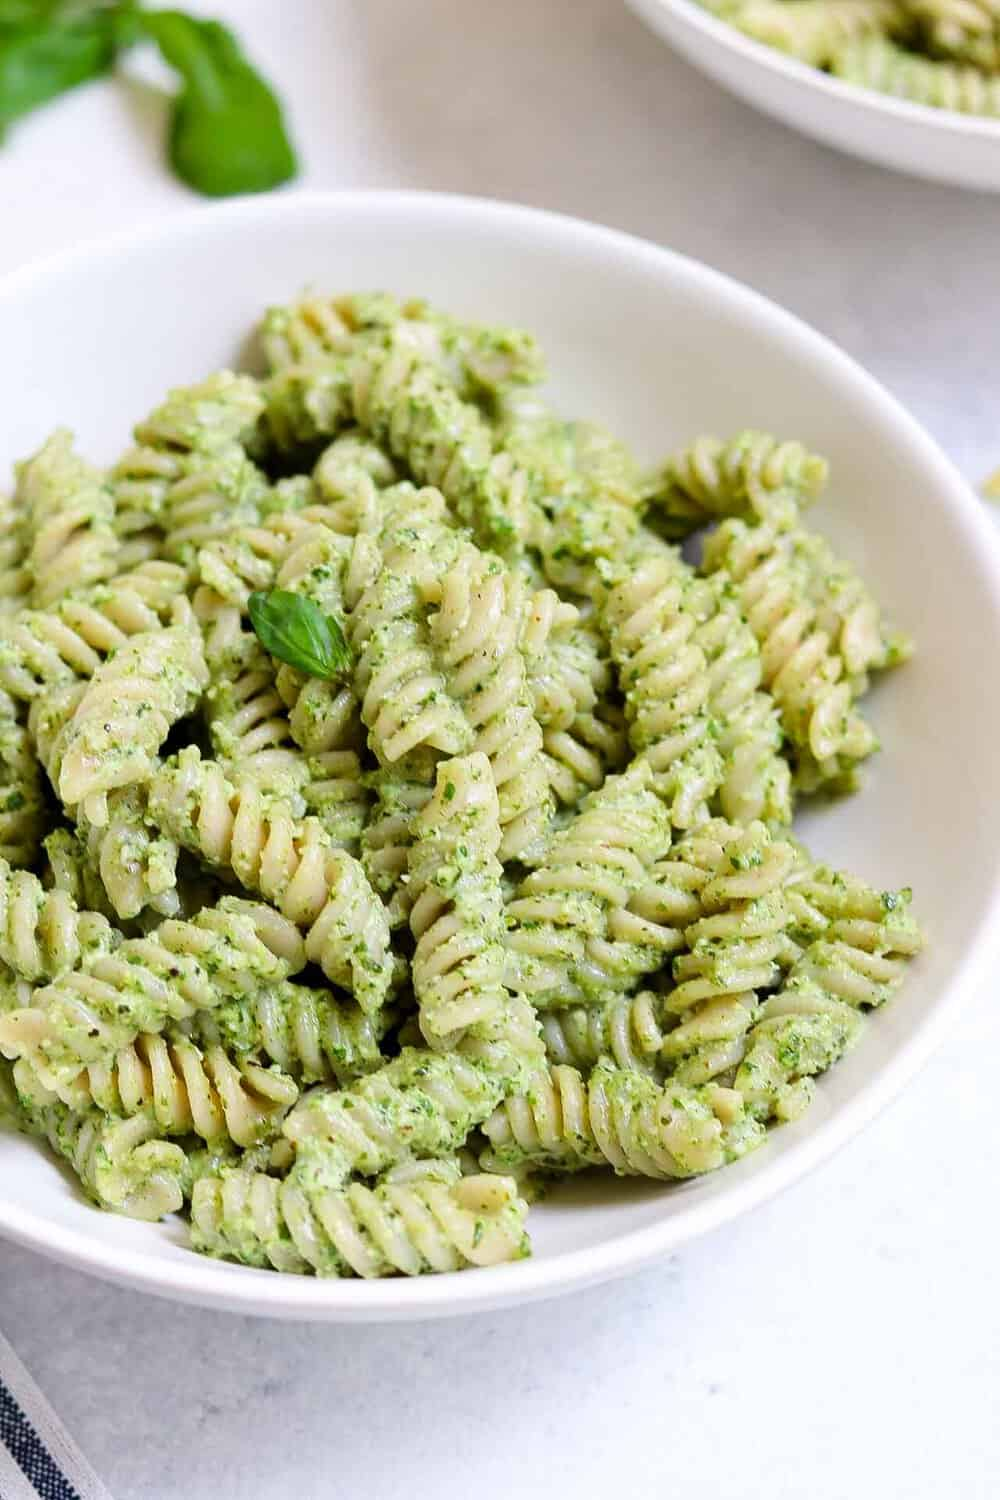 Vegan pasta with pesto in a bowl.